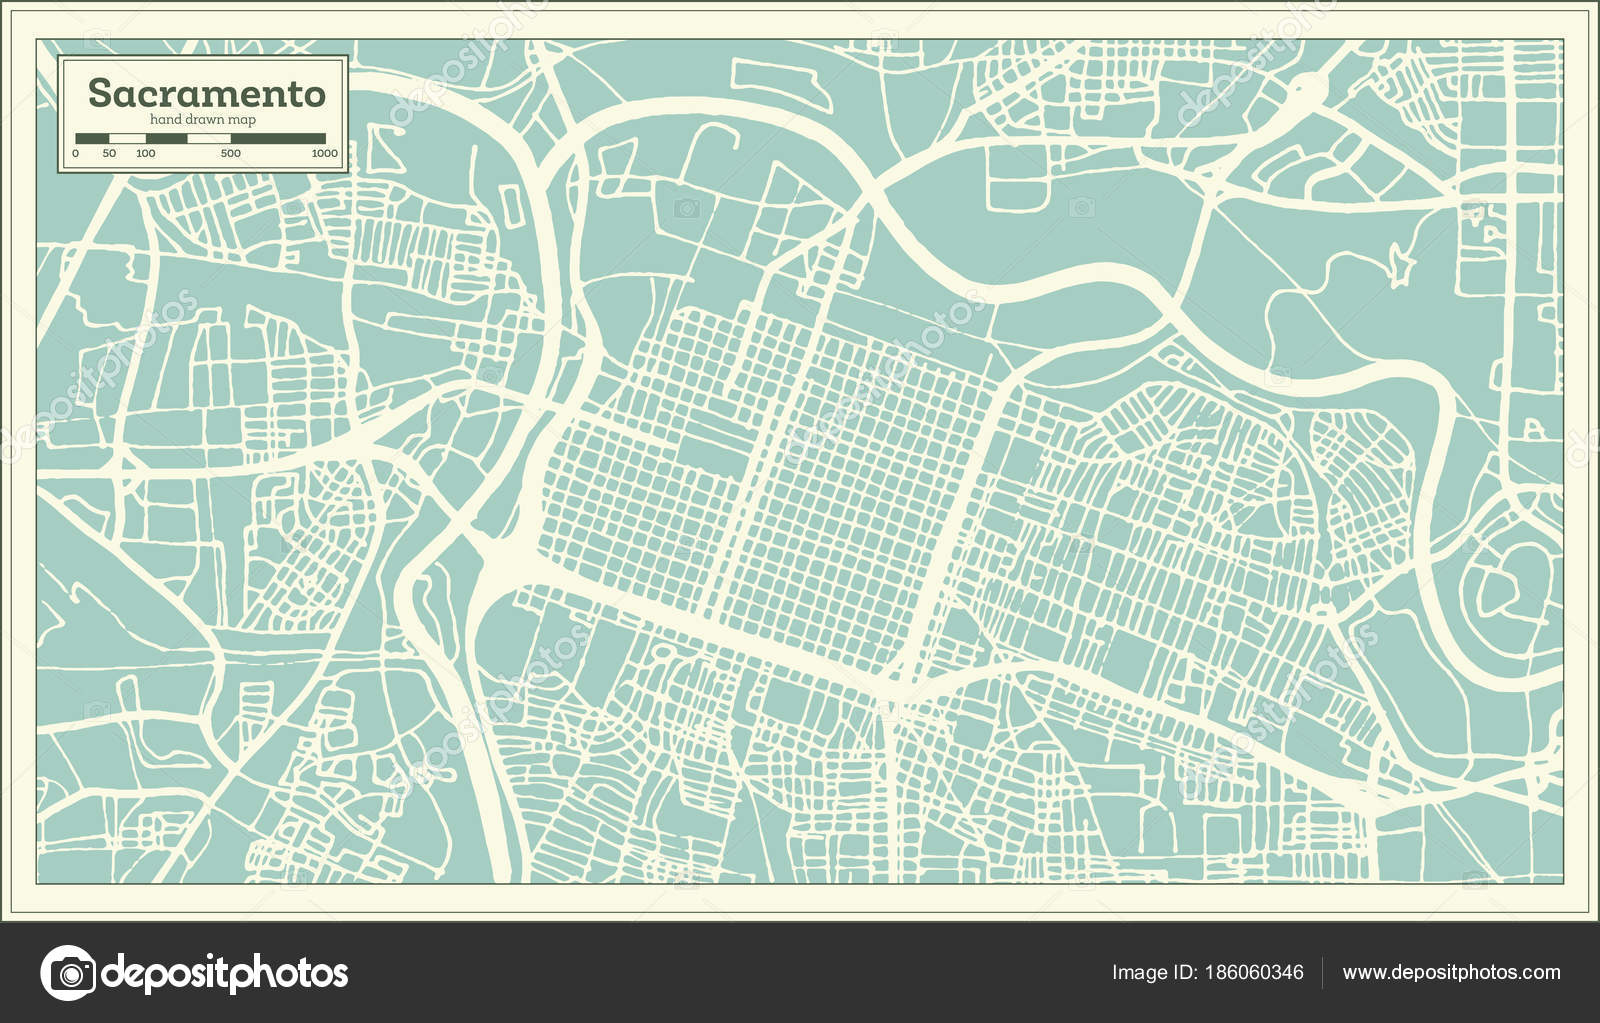 Sacramento California USA City Map in Retro Style. Outline ... on lancaster map outline, chico map outline, inglewood map outline, fullerton map outline, san francisco map outline, washington and oregon map outline, usa map outline, inyo county map outline, avalon map outline,